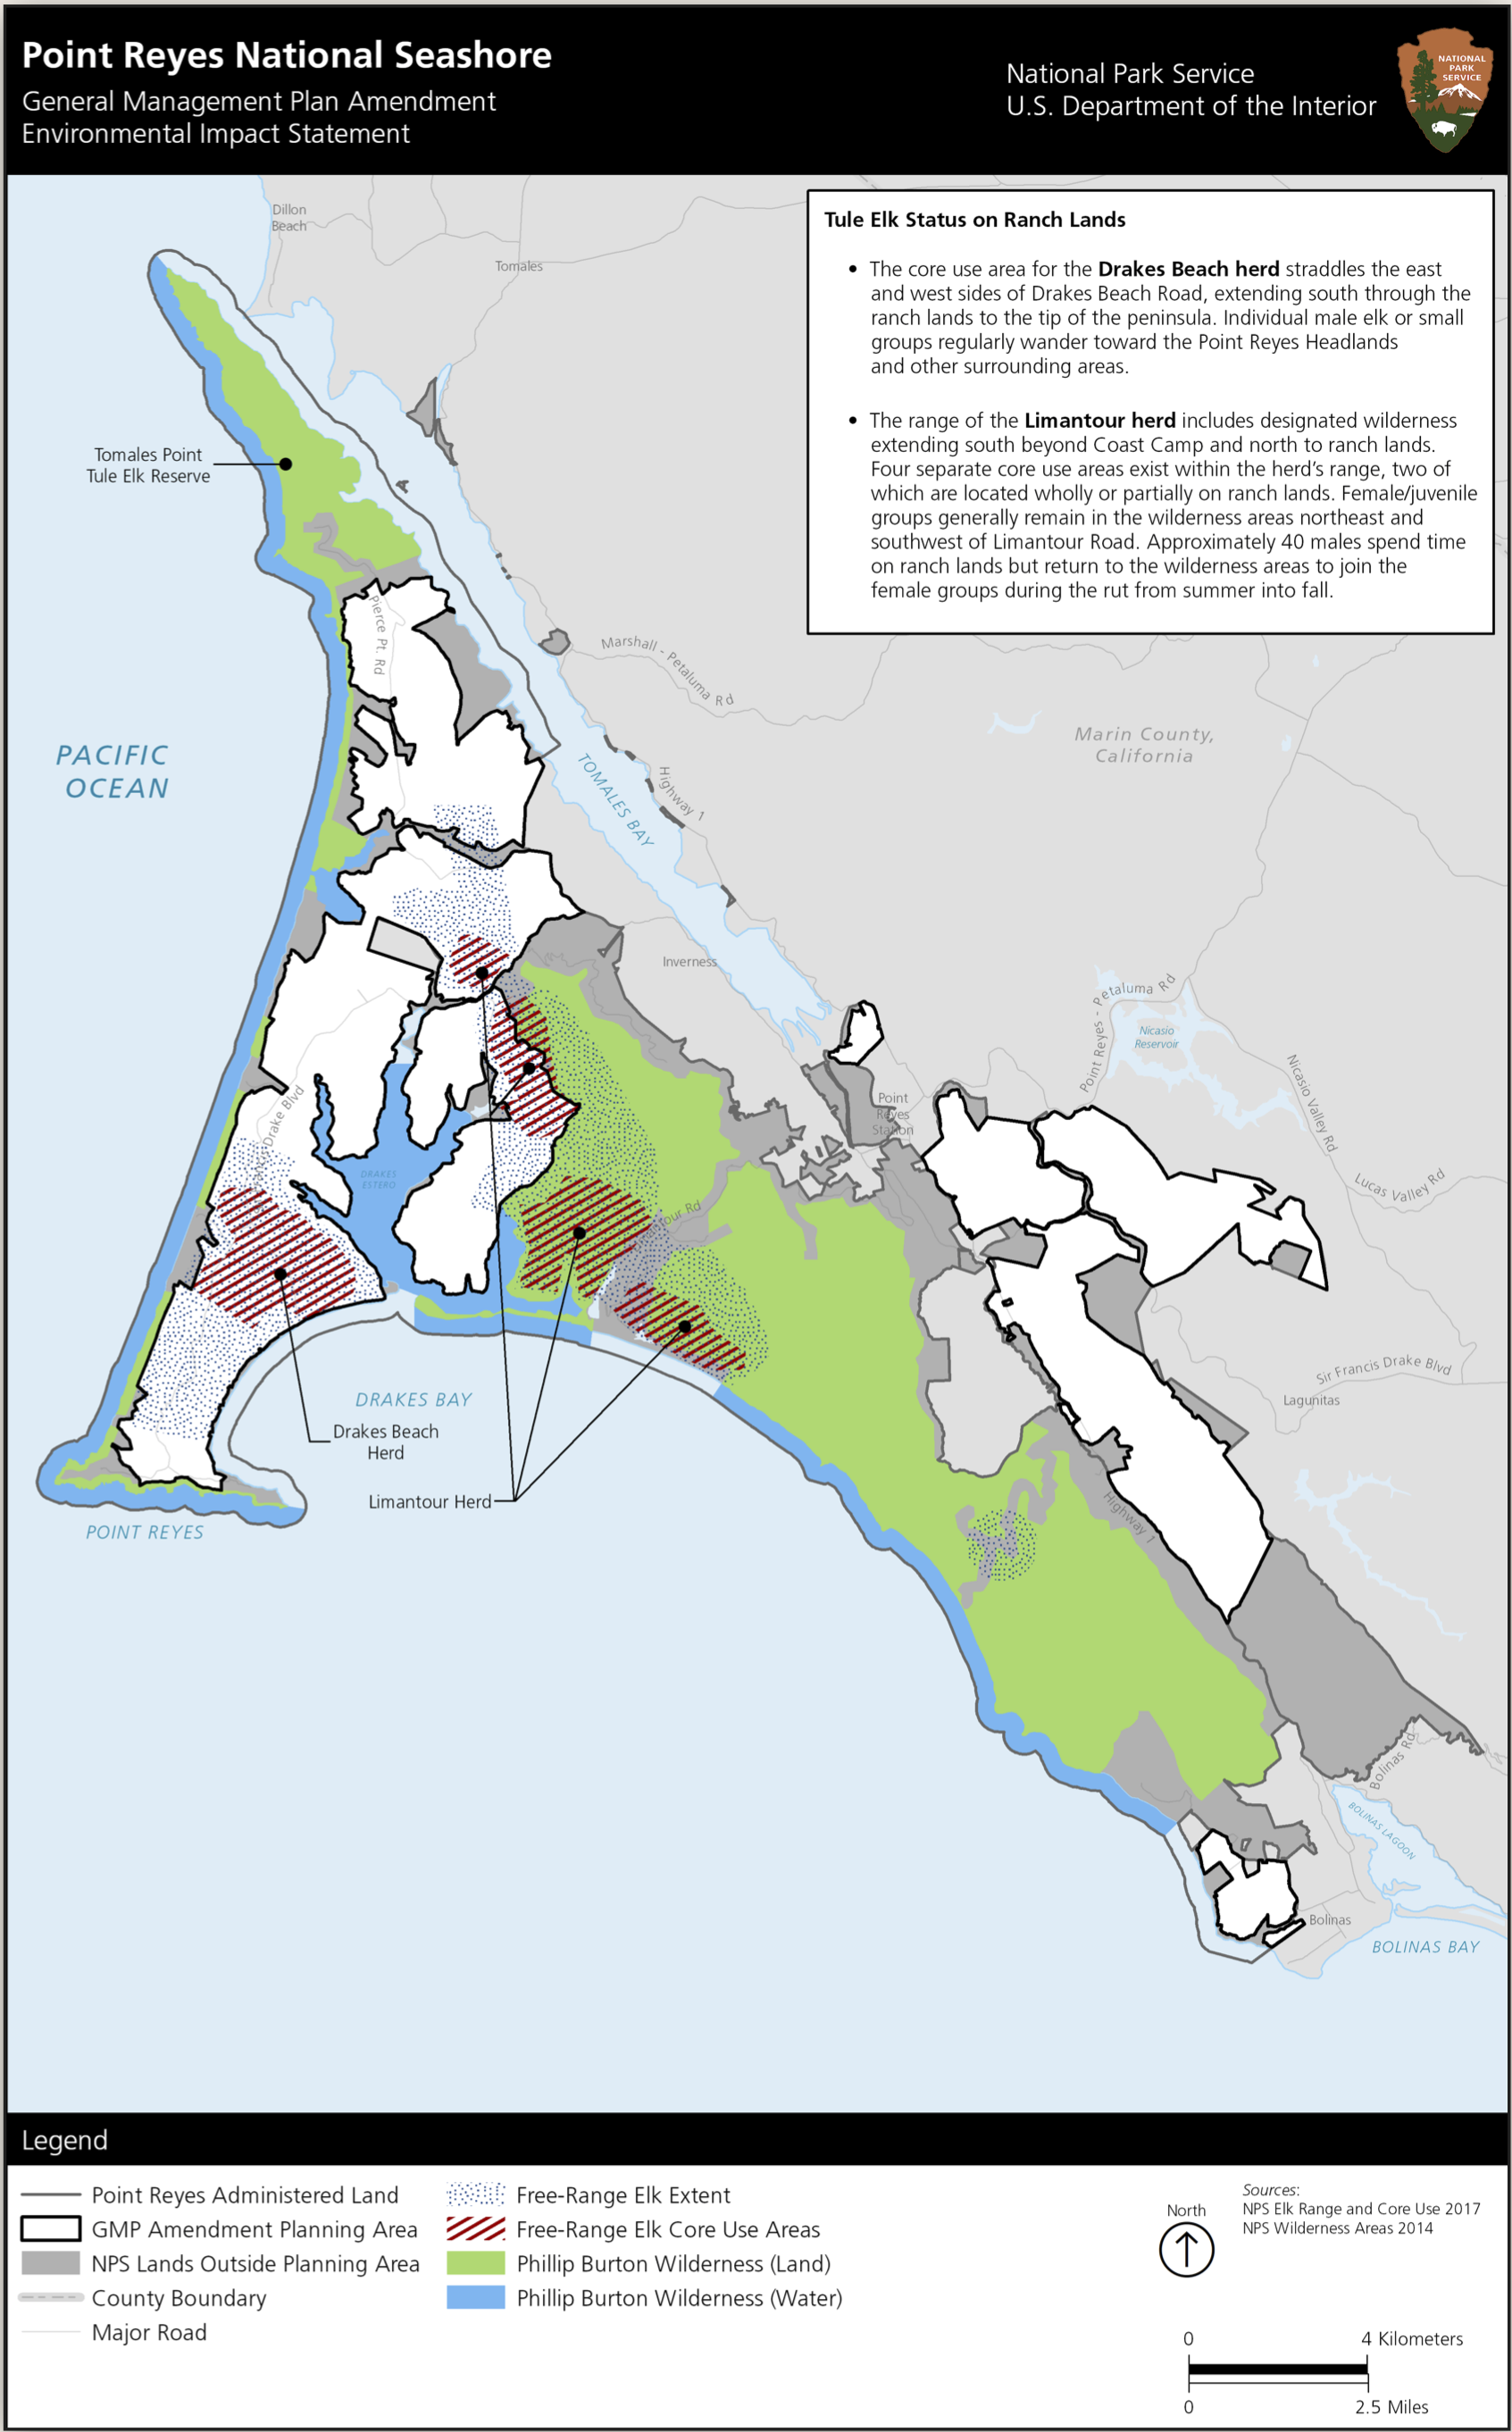 Map 3.  The white polygons are active livestock ranches within Point Reyes National Seashore. Not shown is the non-free-range tule elk area on Tomales Point at the north end, where the elk are fenced by the NPS to prevent their free movement. Source: National Park Service.